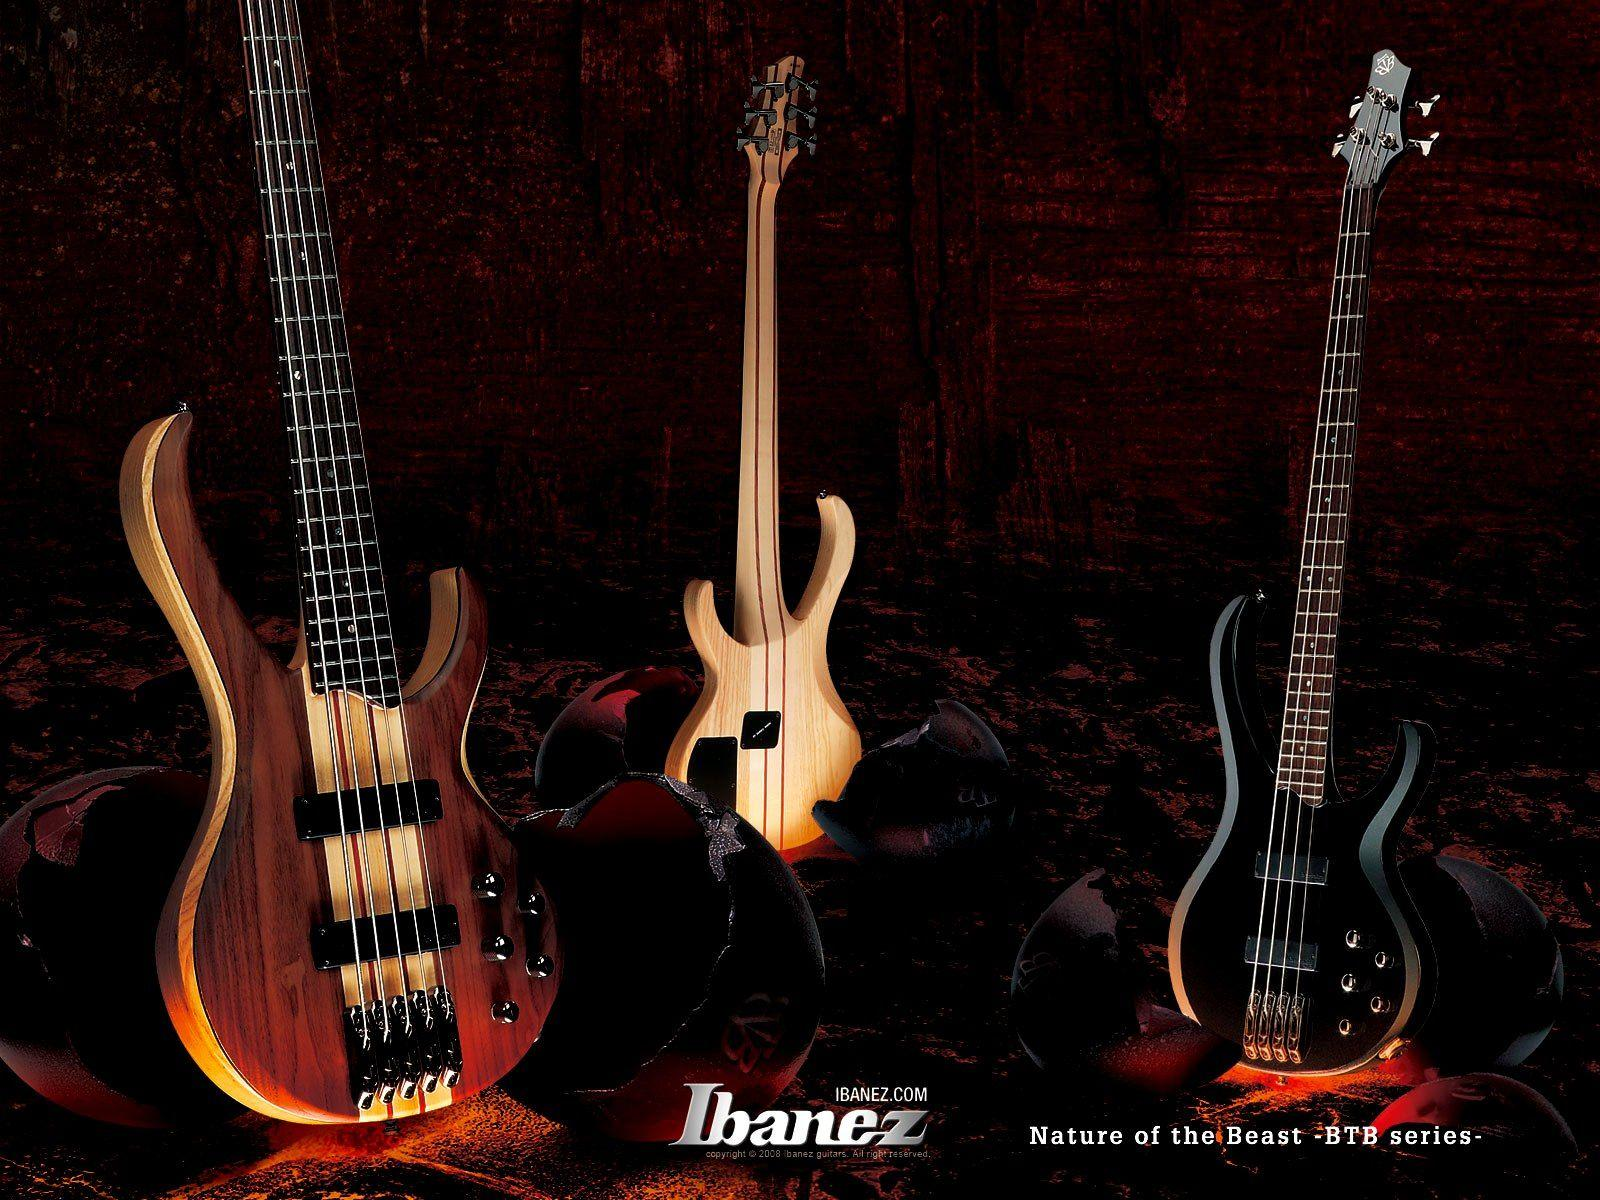 Bass Guitar Wallpaper Wallpapertag: Ibanez Bass Guitar Wallpapers